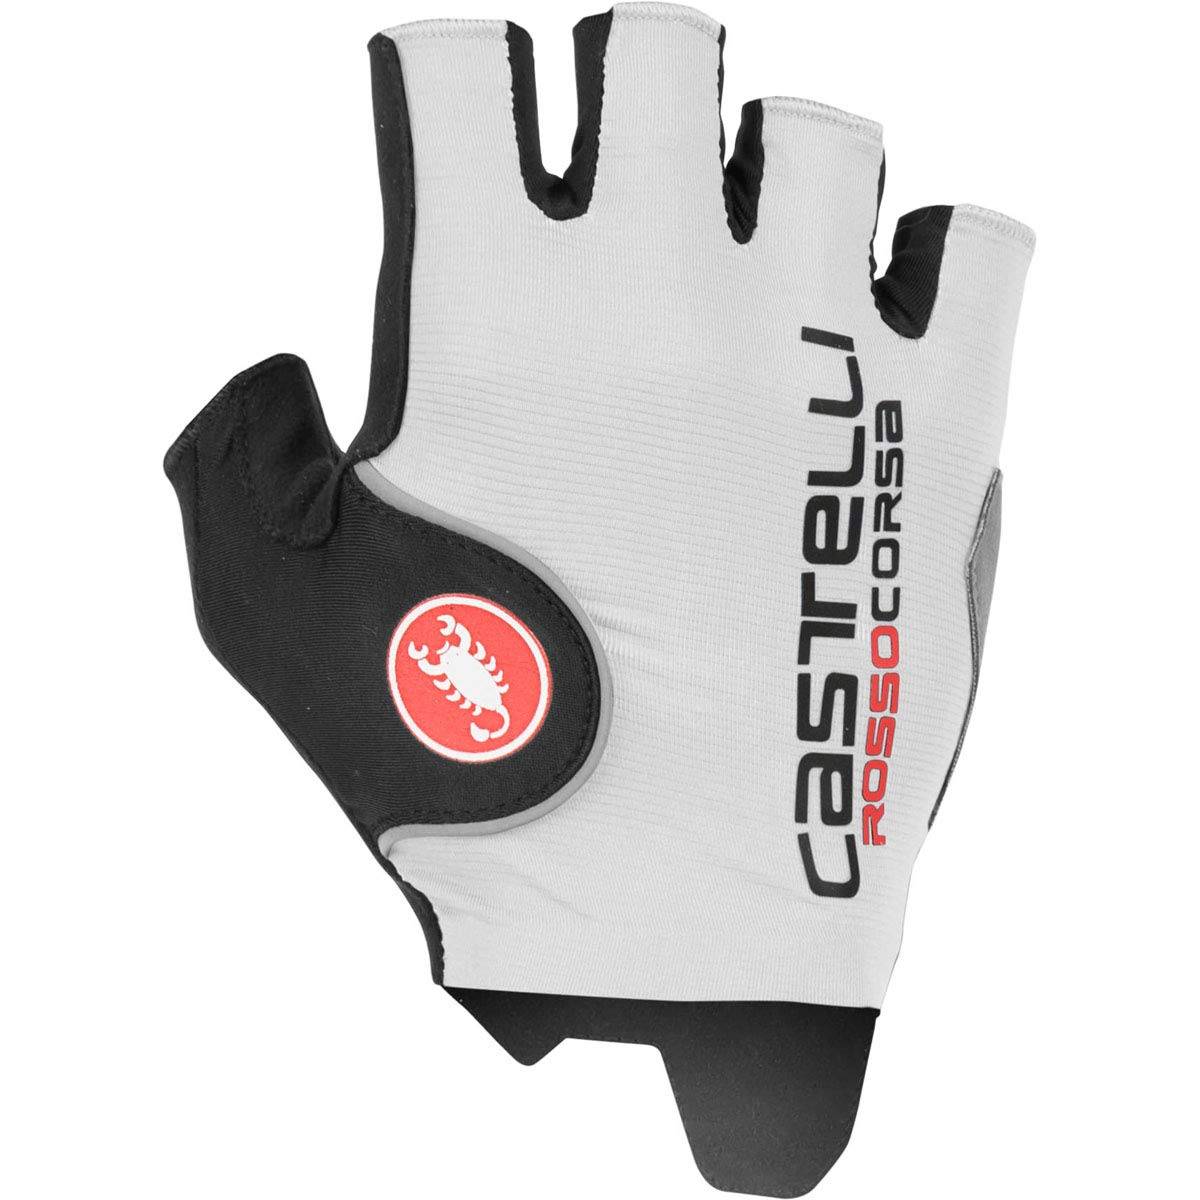 Castelli Rosso Corsa Pro Cycling Gloves